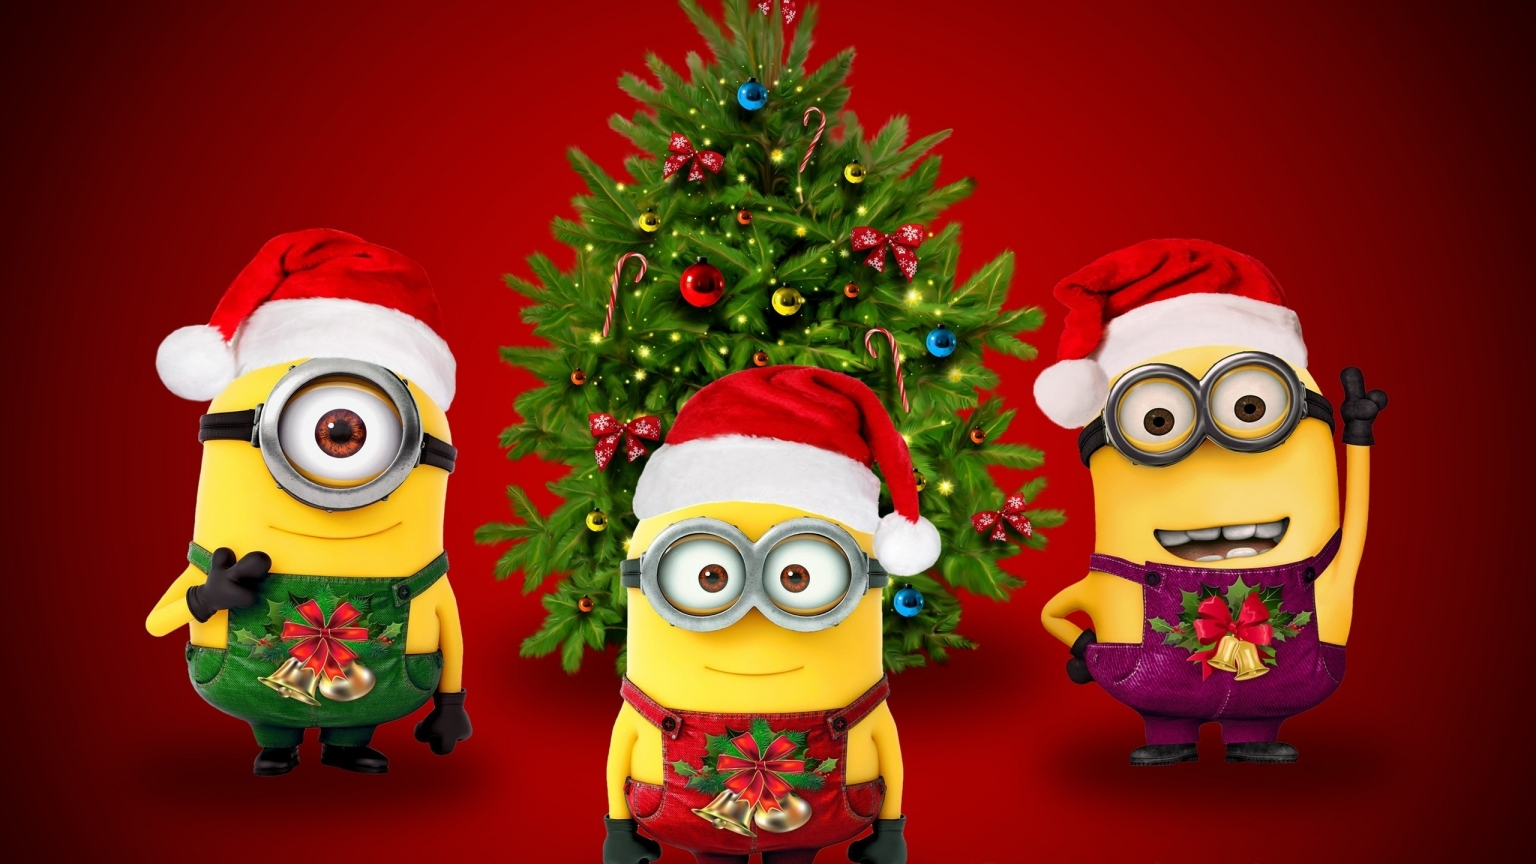 Christmas & Minions for 1536 x 864 HDTV resolution